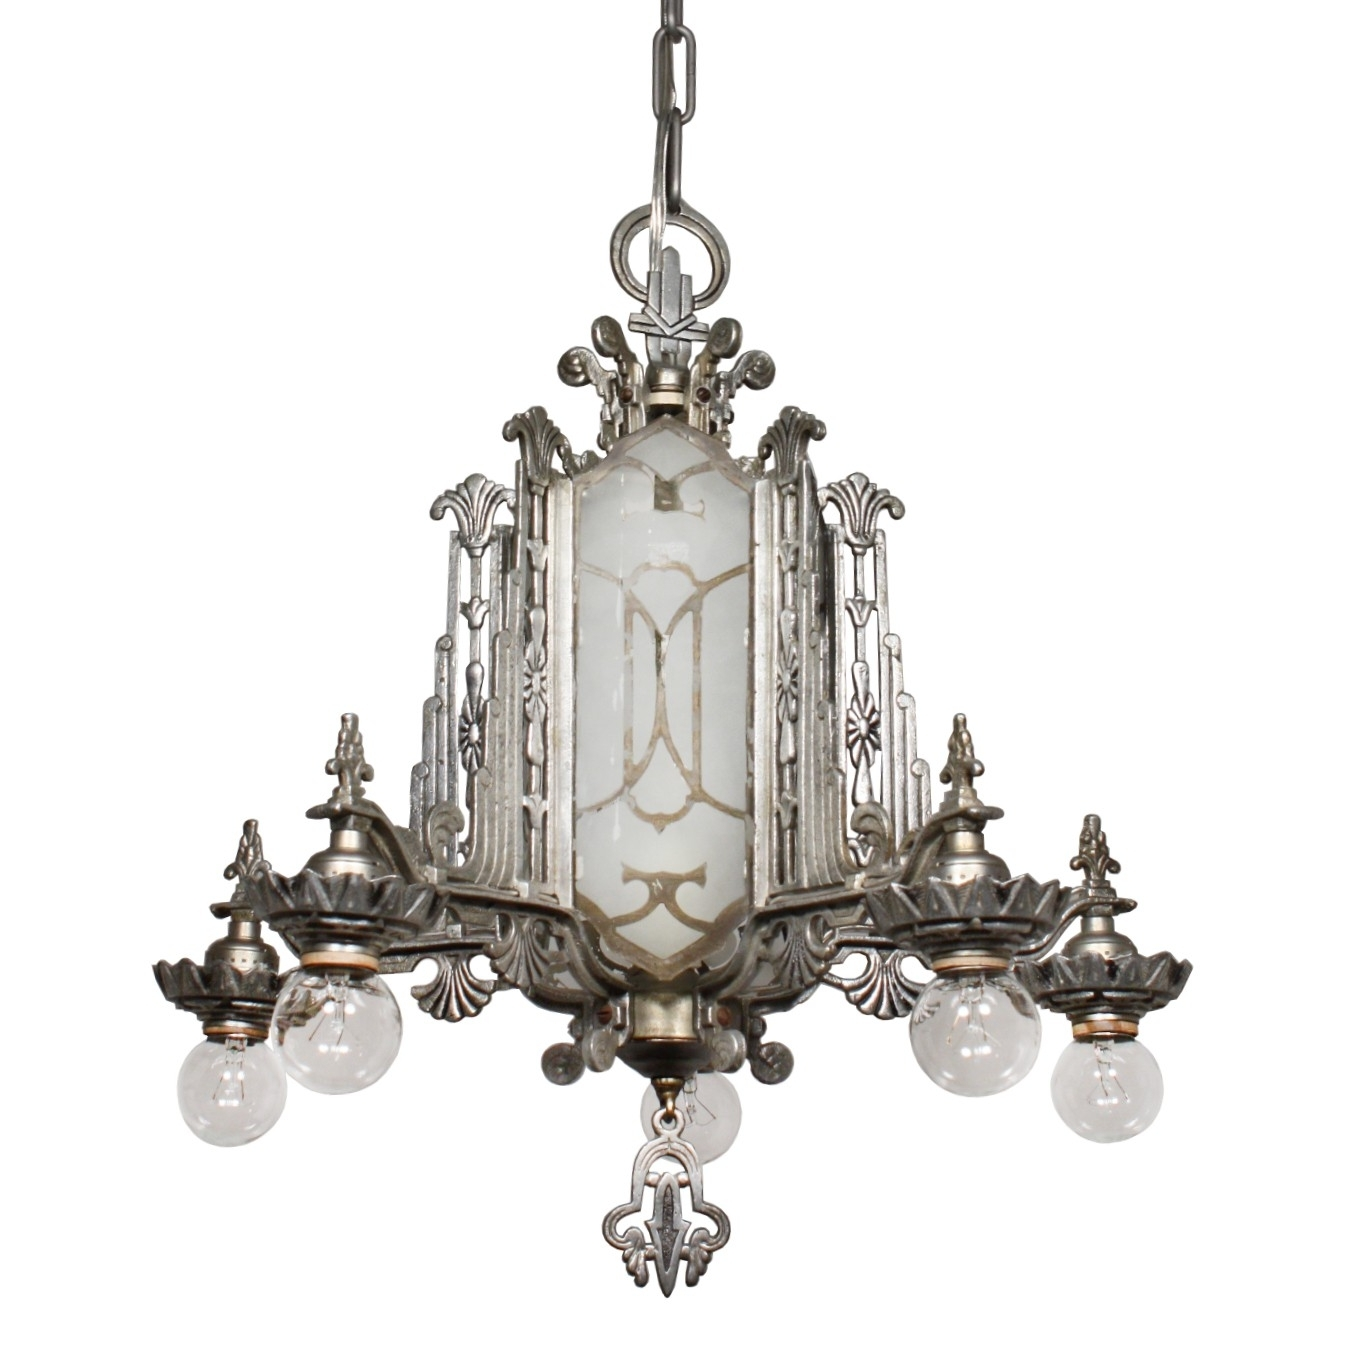 Magnificent Antique Art Deco Chandelier, Mirrored And Etched Glass Regarding Newest Mirrored Chandelier (View 7 of 20)